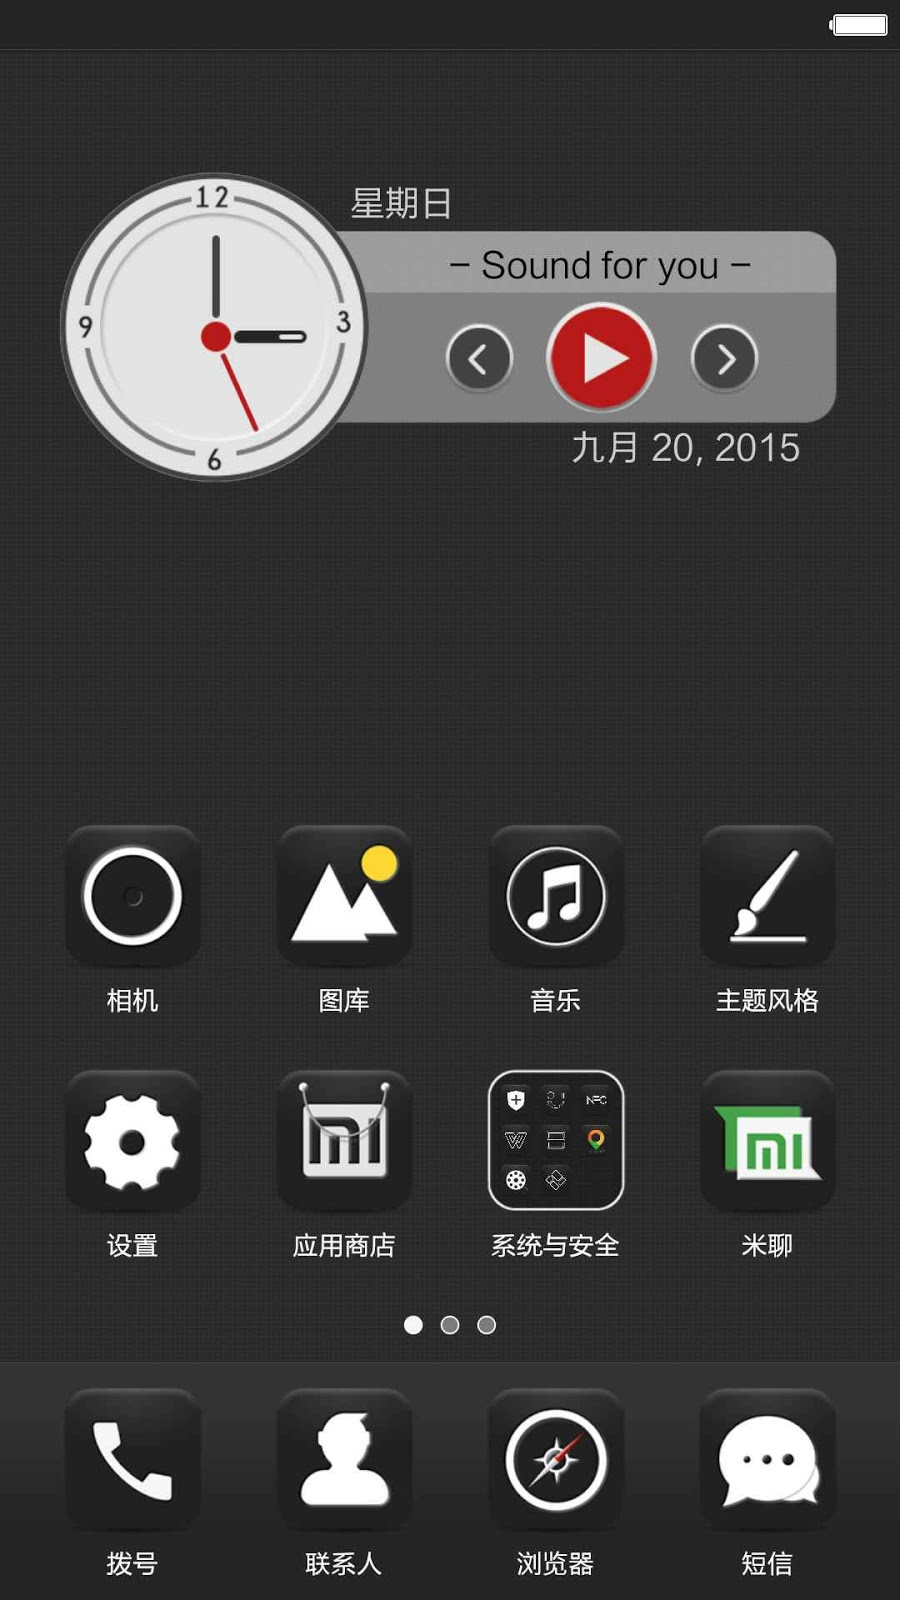 miui-3rd-party-theme